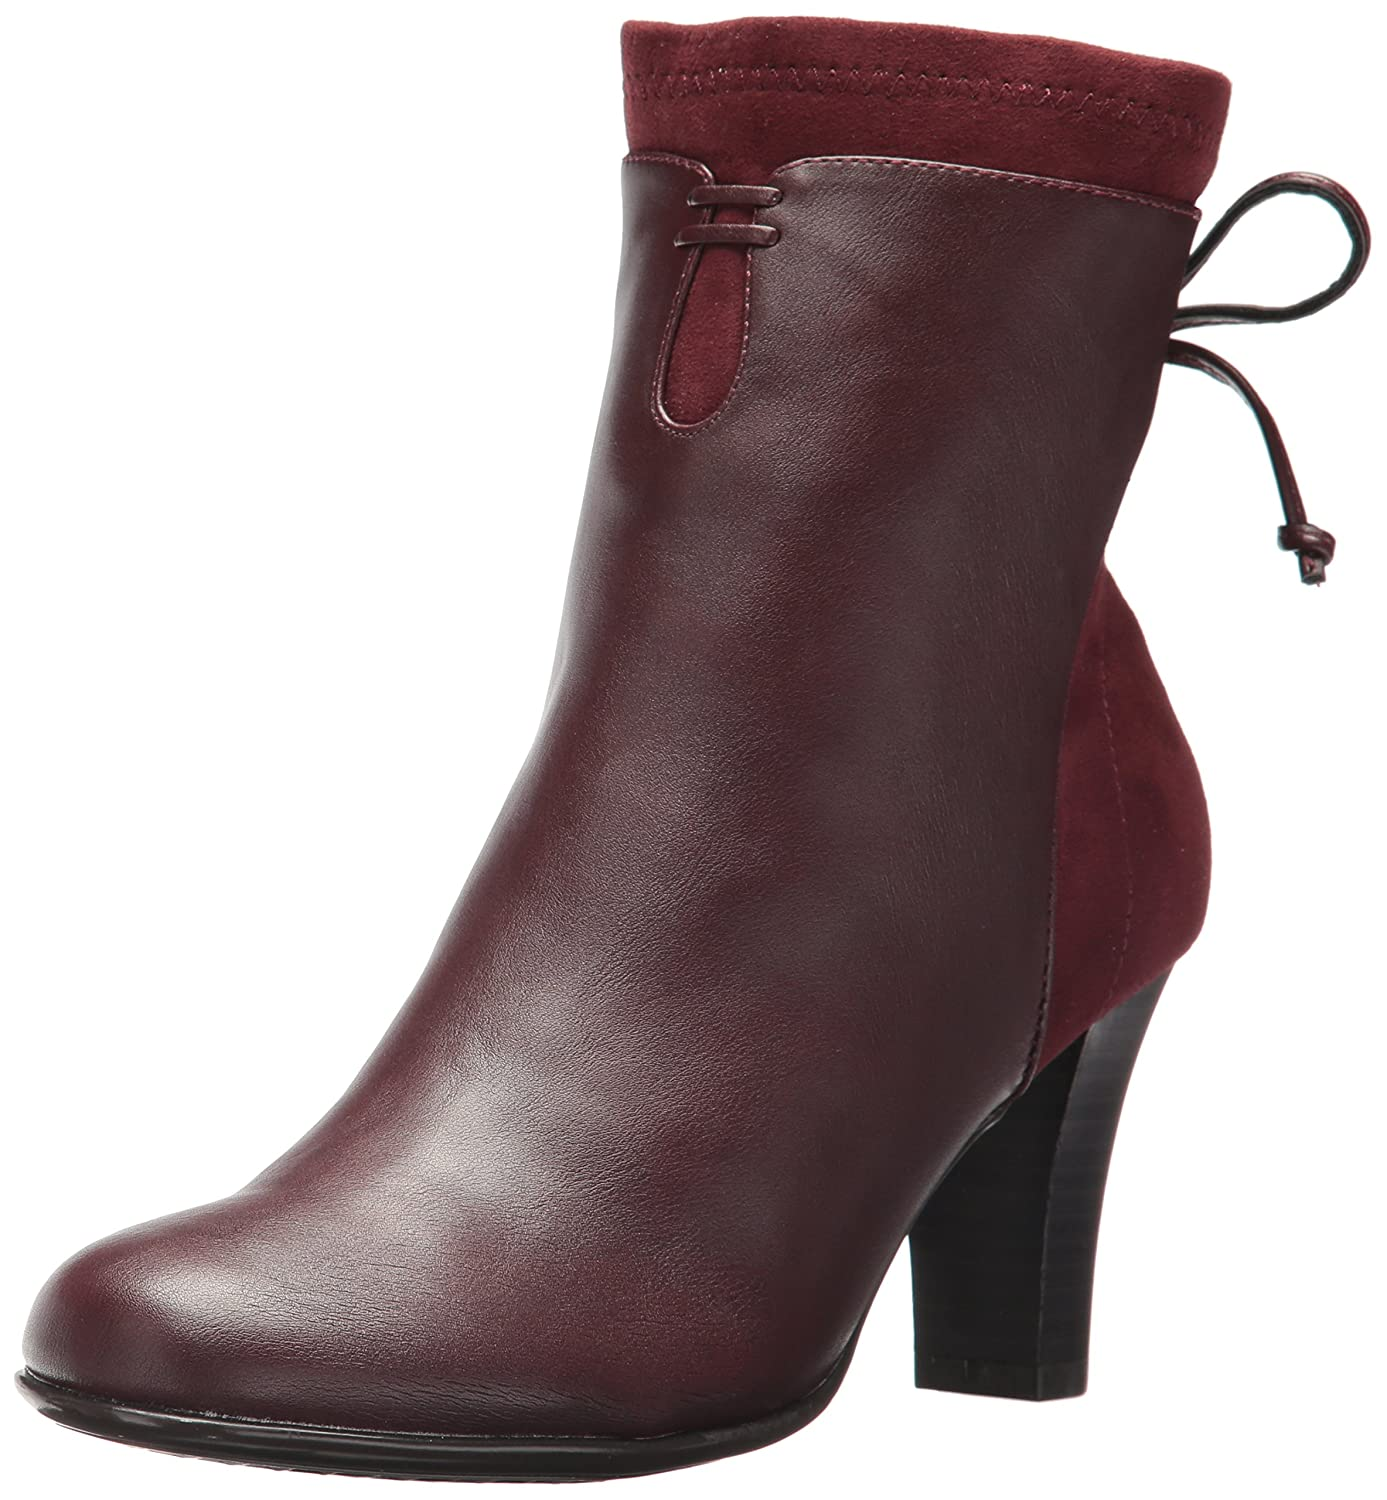 Aerosoles Women's Leading Role Ankle Boot B0722Y1L37 7.5 M US|Wine Combo